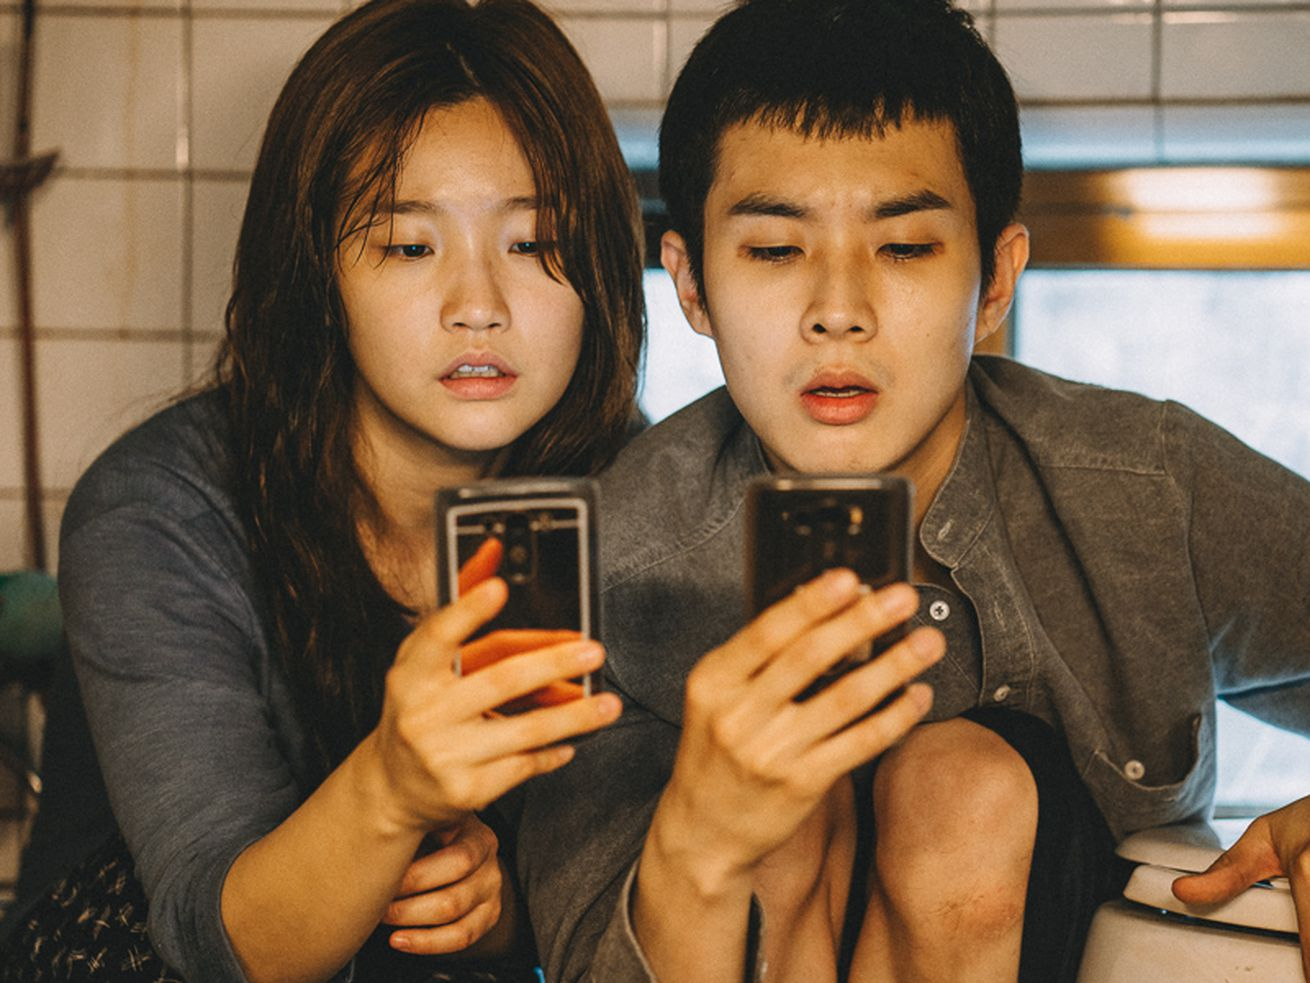 """Park So-dam and Choi Woo-sik sit close to one another on the floor of a bathroom while each stares at their phone in the movie """"Parasite."""""""